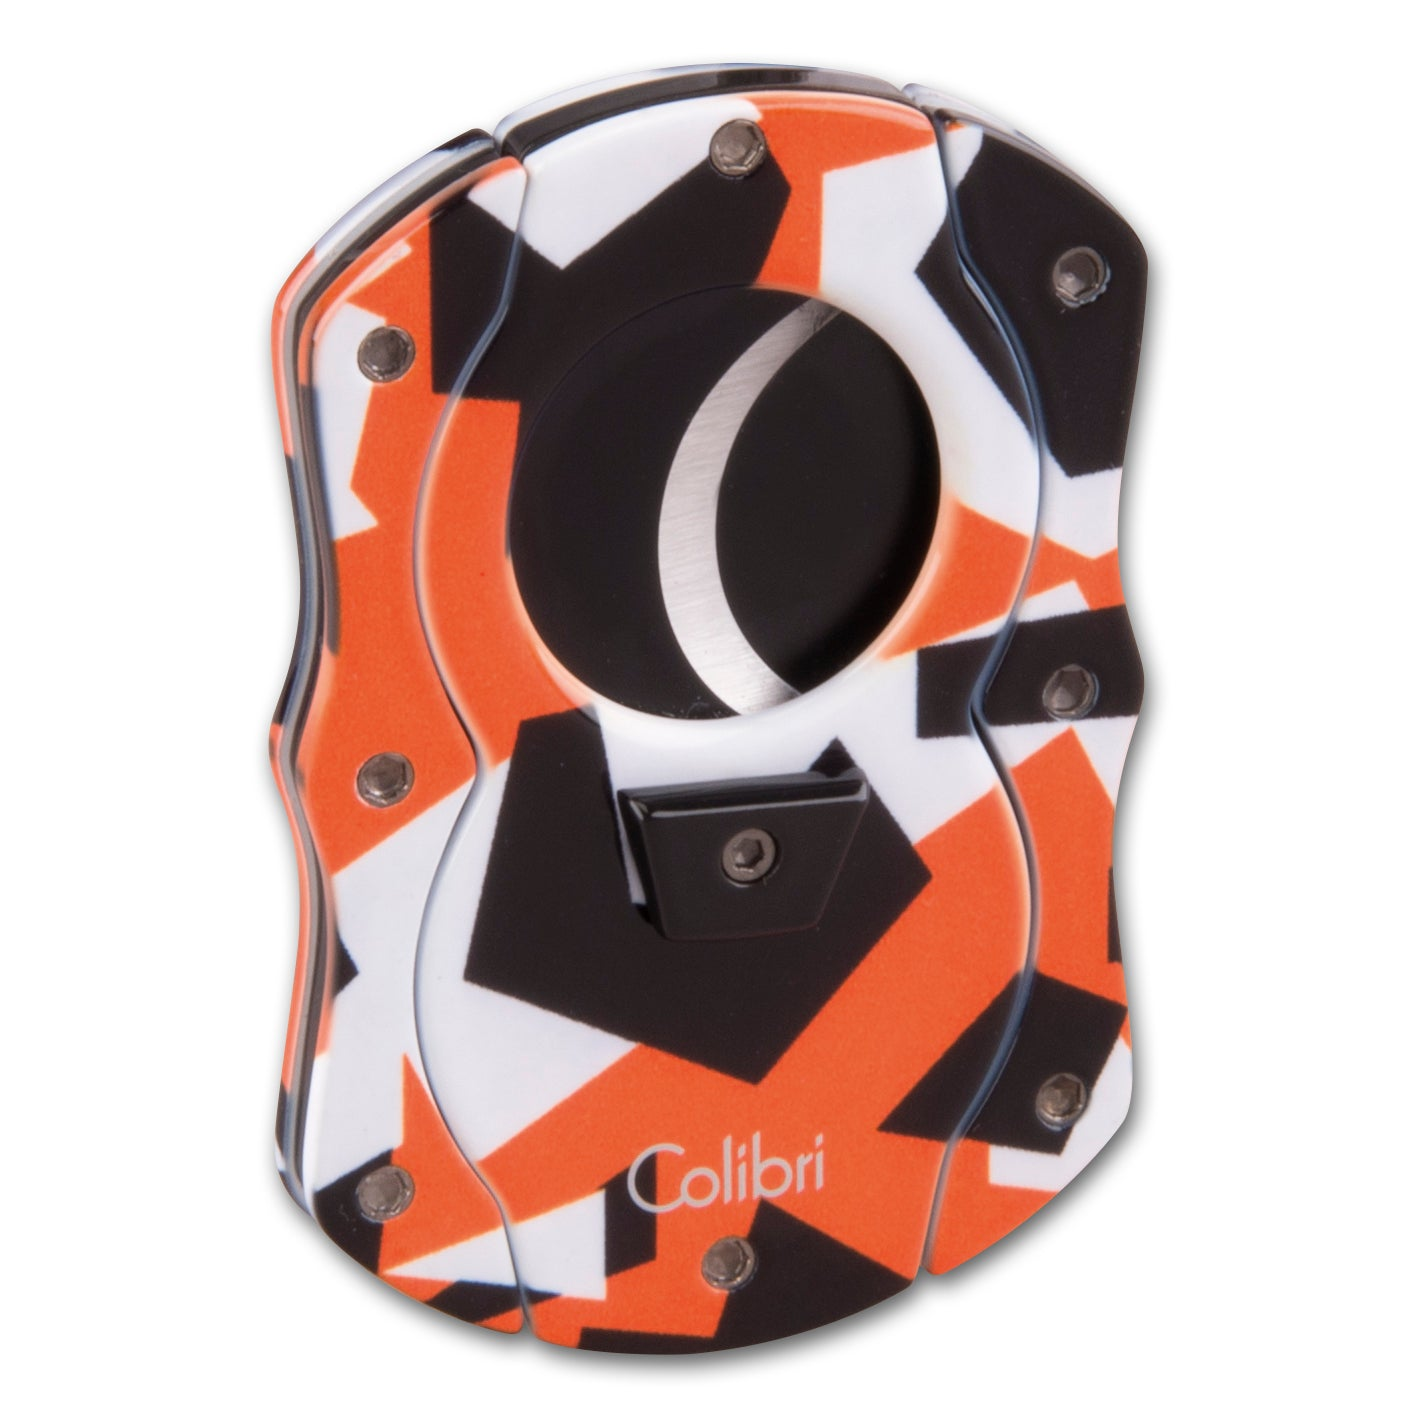 Cigarrenabschneider COLIBRI Cut Camo orange/camouflage 25mm